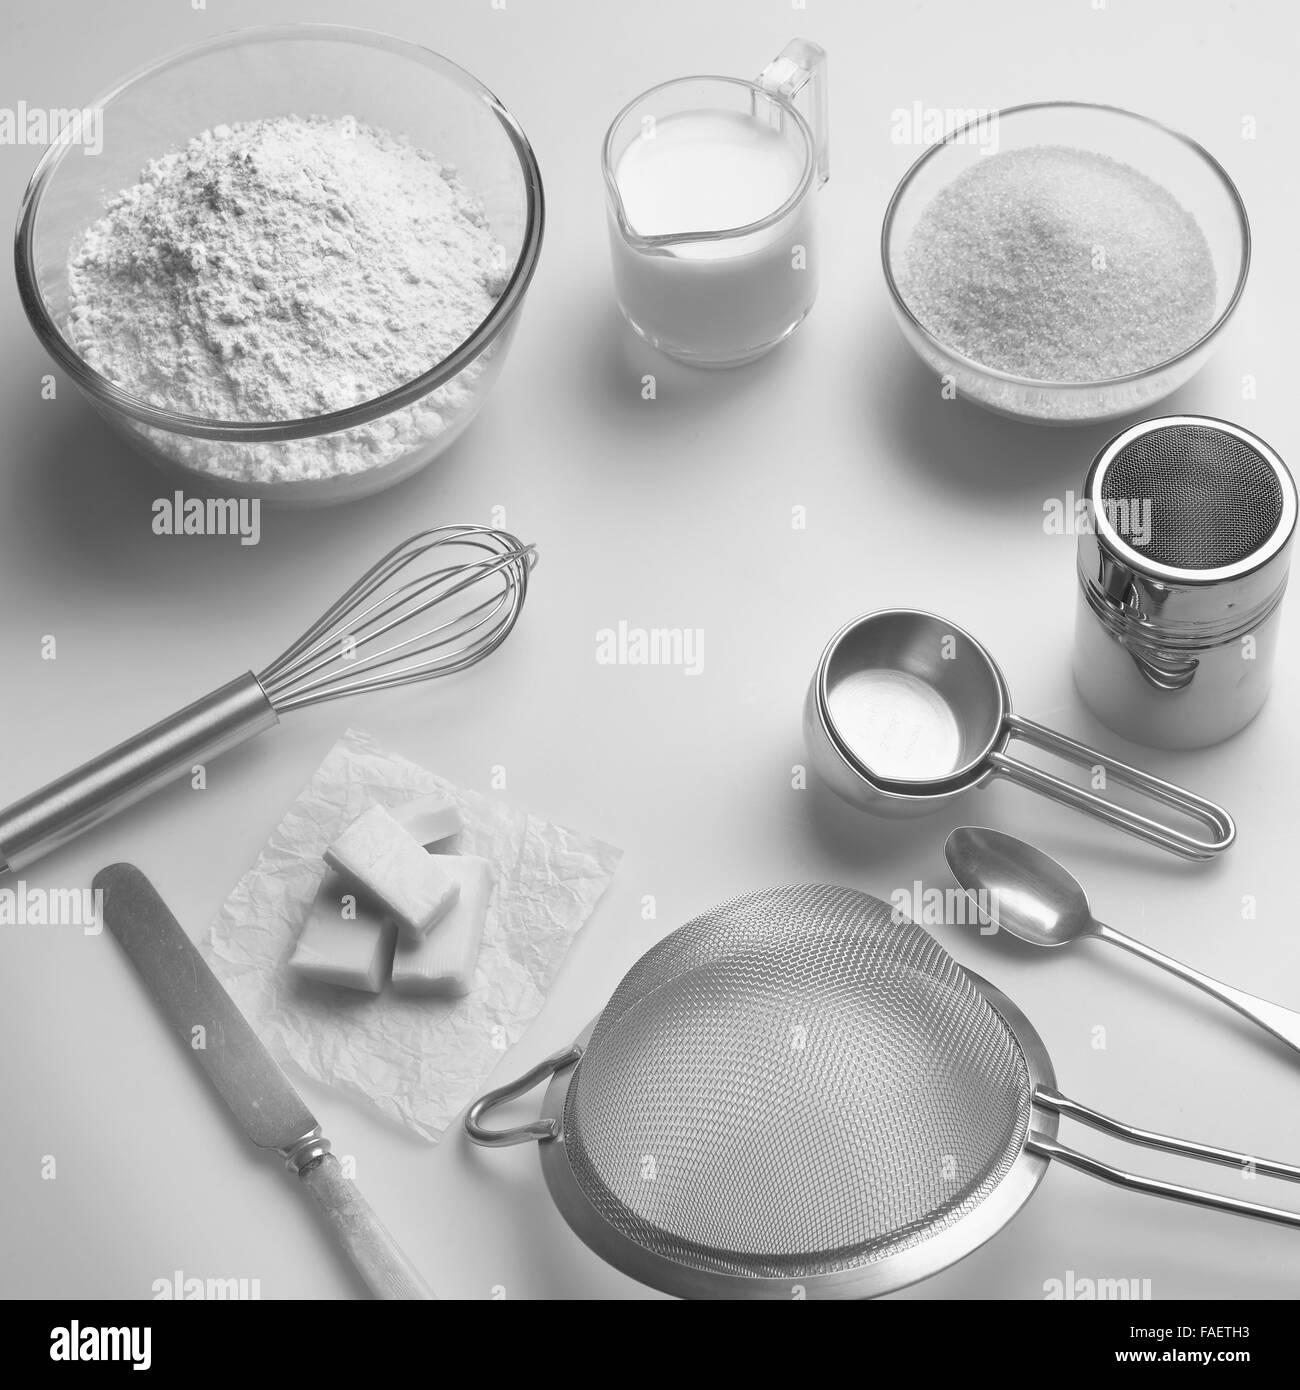 Black and white image of assorted kitchen utensils and raw food ingredients for home baking. - Stock Image